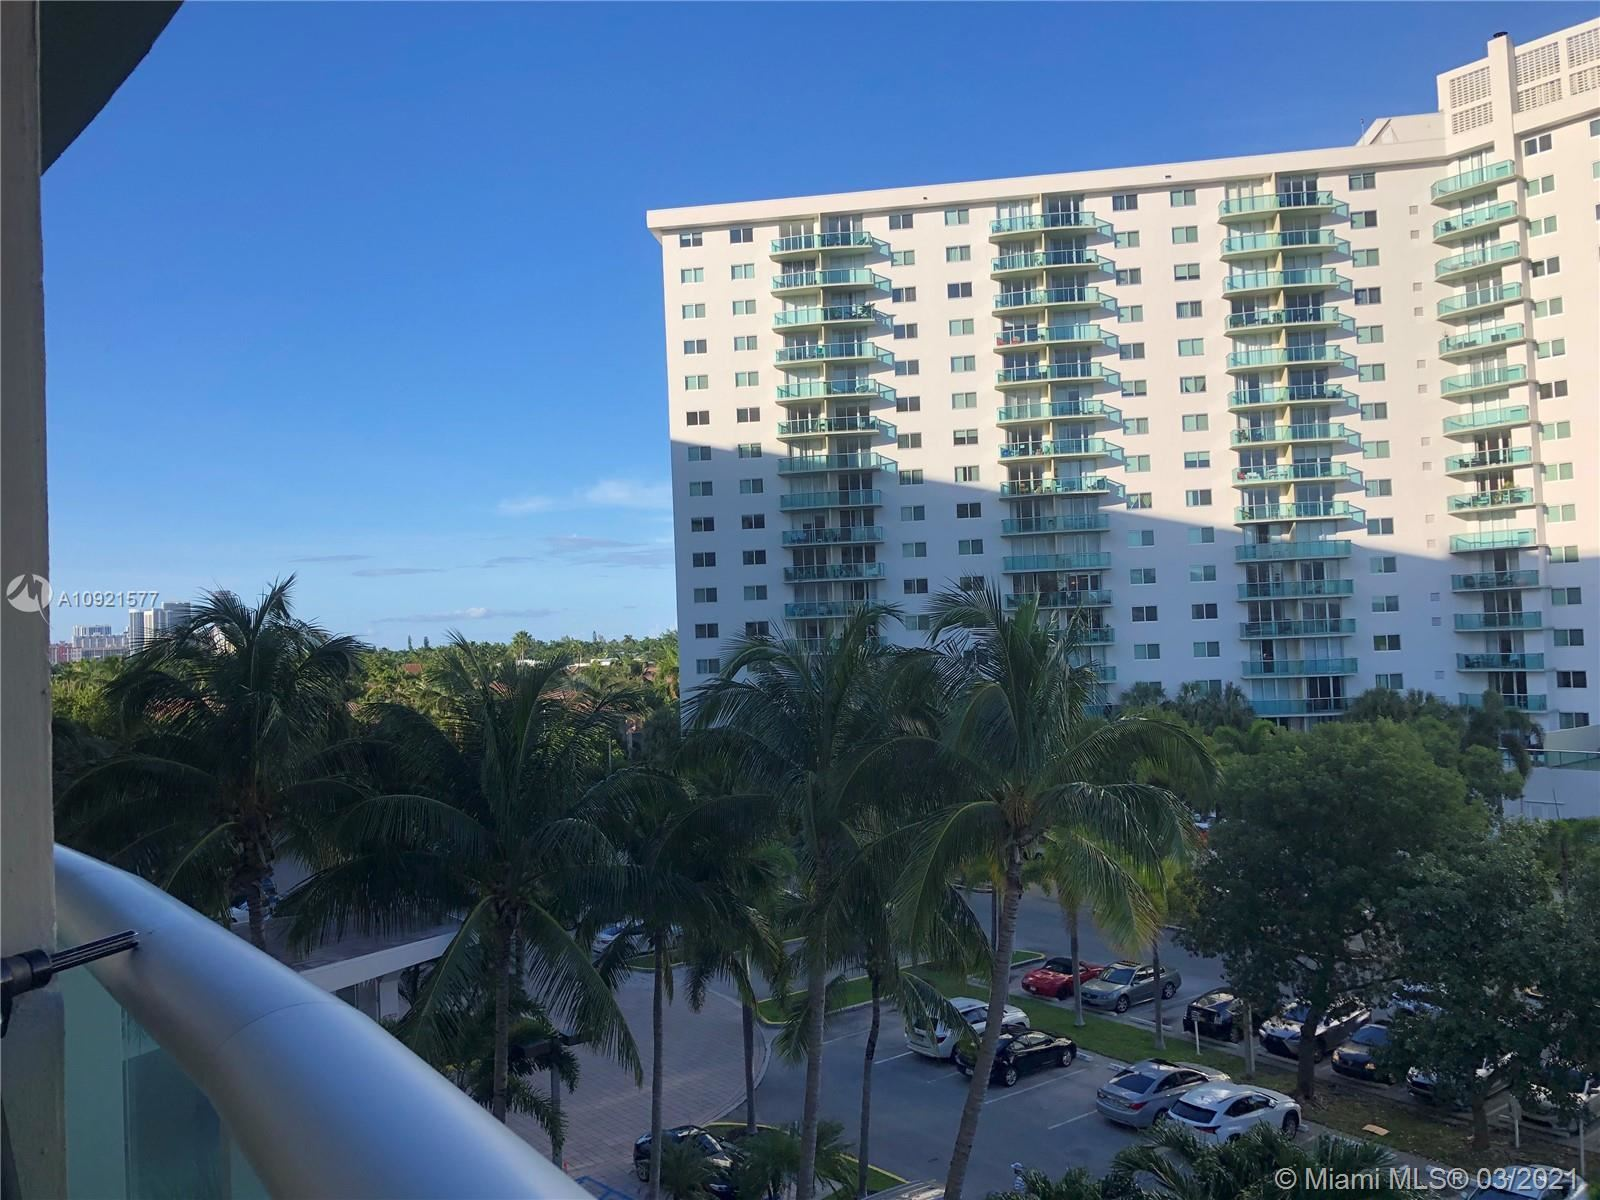 19390 Collins Ave #504, Sunny Isles, FL 33160 - #: A10921577